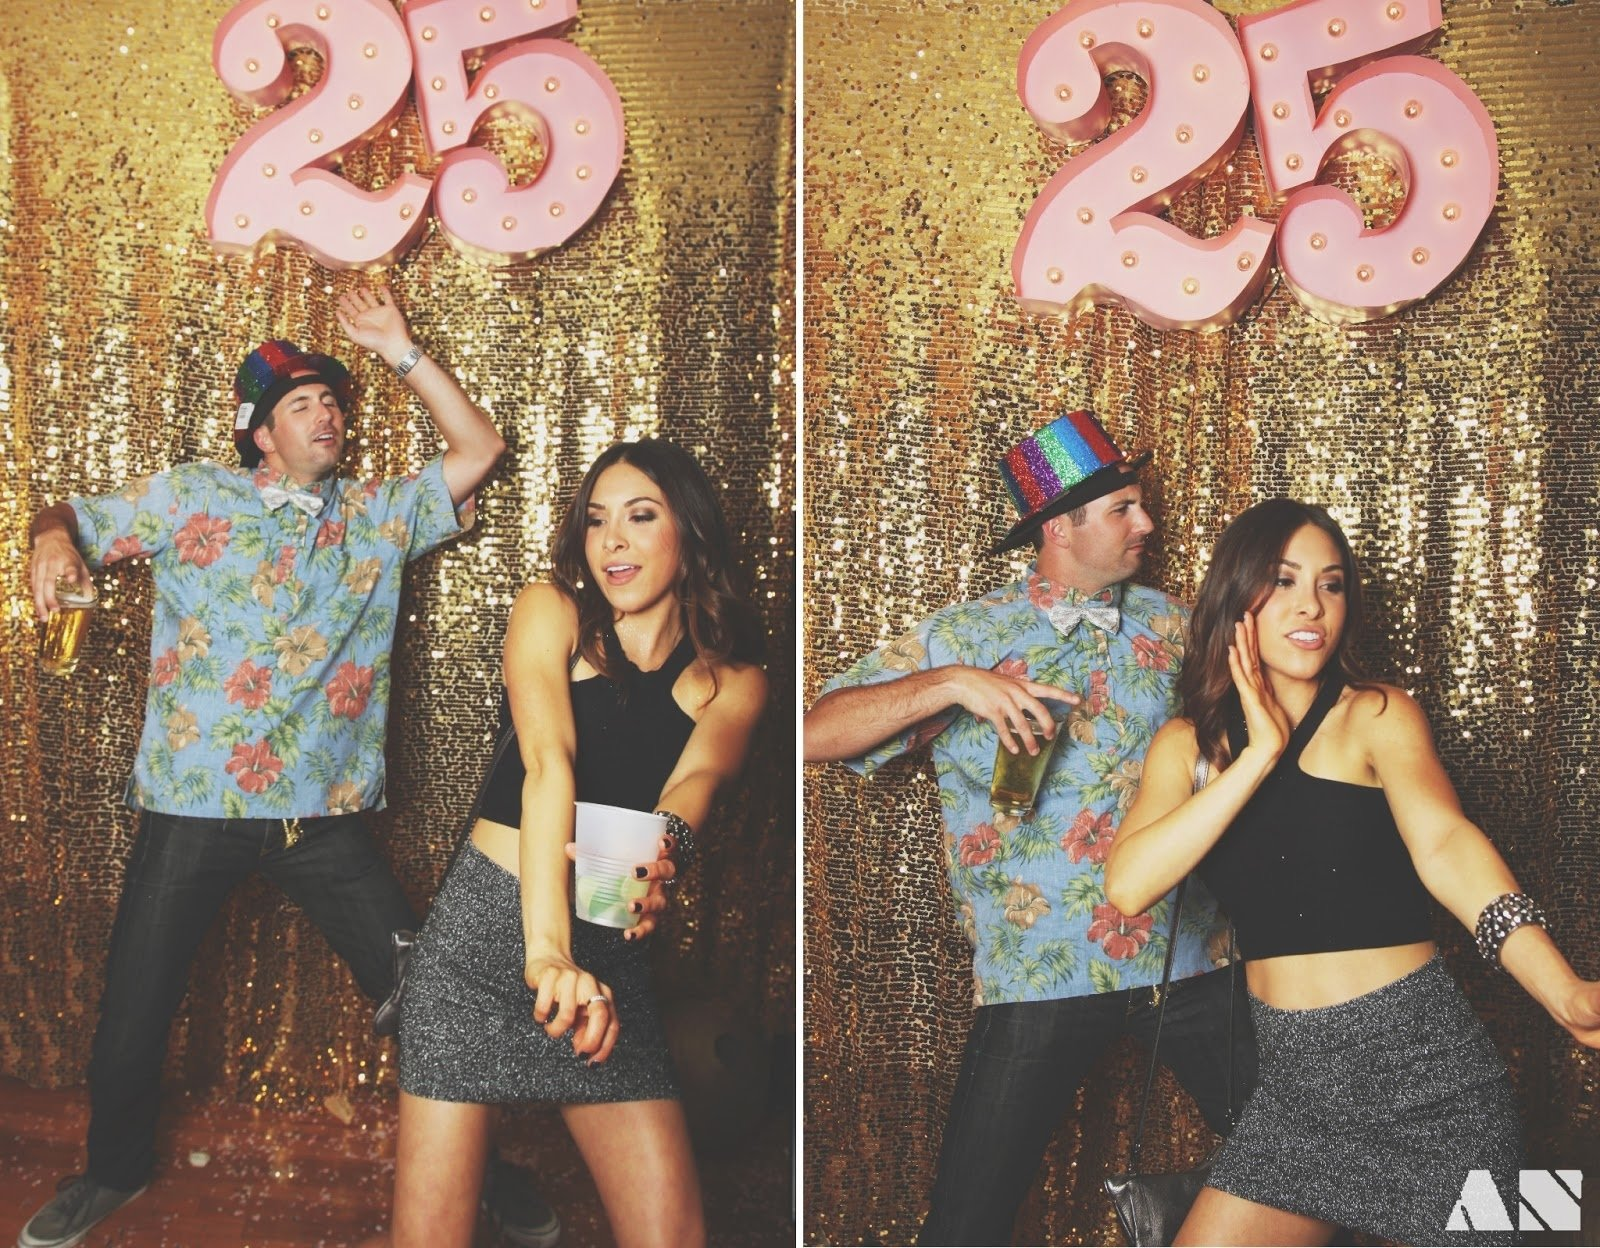 10 Spectacular Ideas For 25Th Birthday Party chloe moore photography the blog glitterfest a glittery golden 1 2020